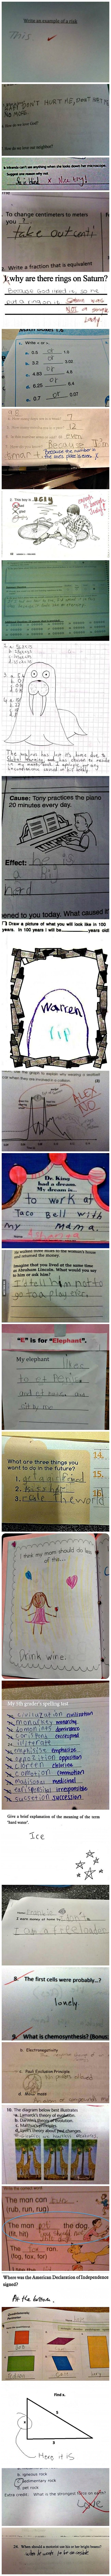 Funny answers and comments from students - 9GAG